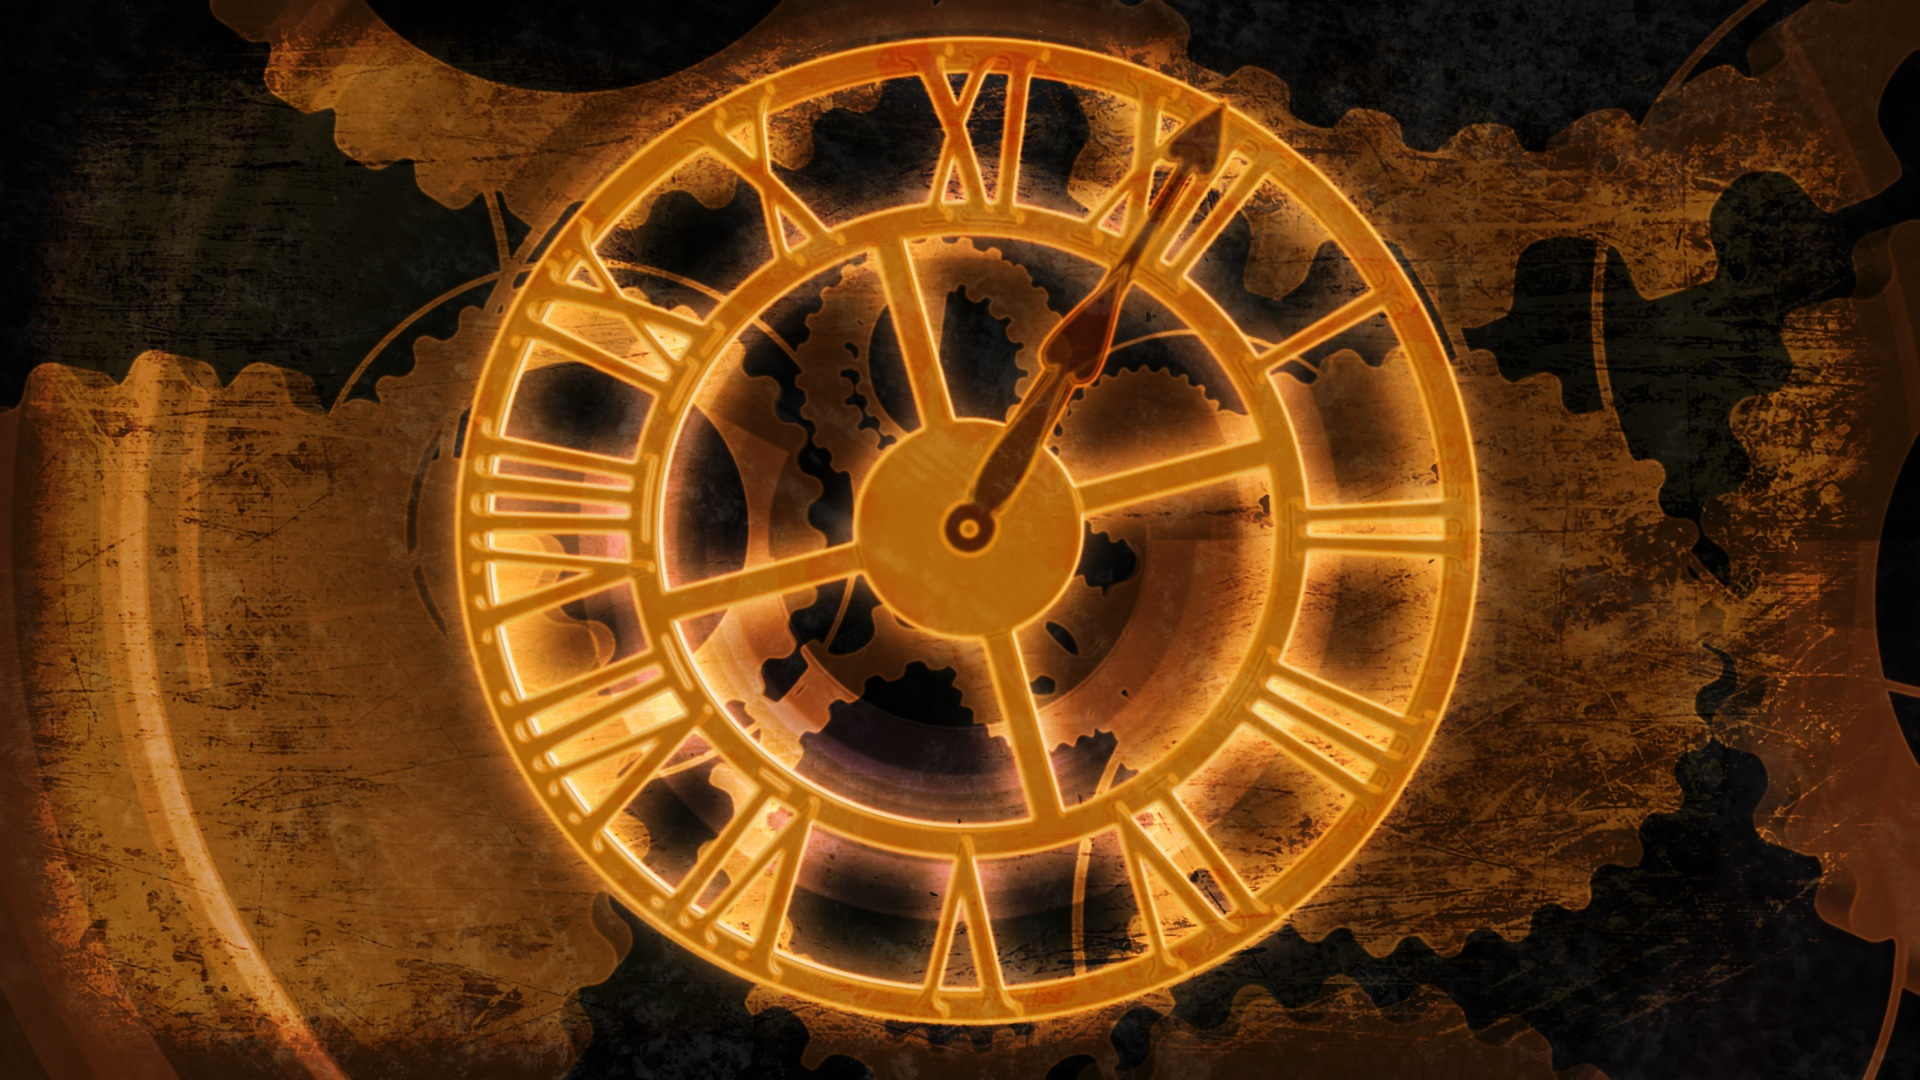 008968716-clock-and-gears-looping-animat-713-57